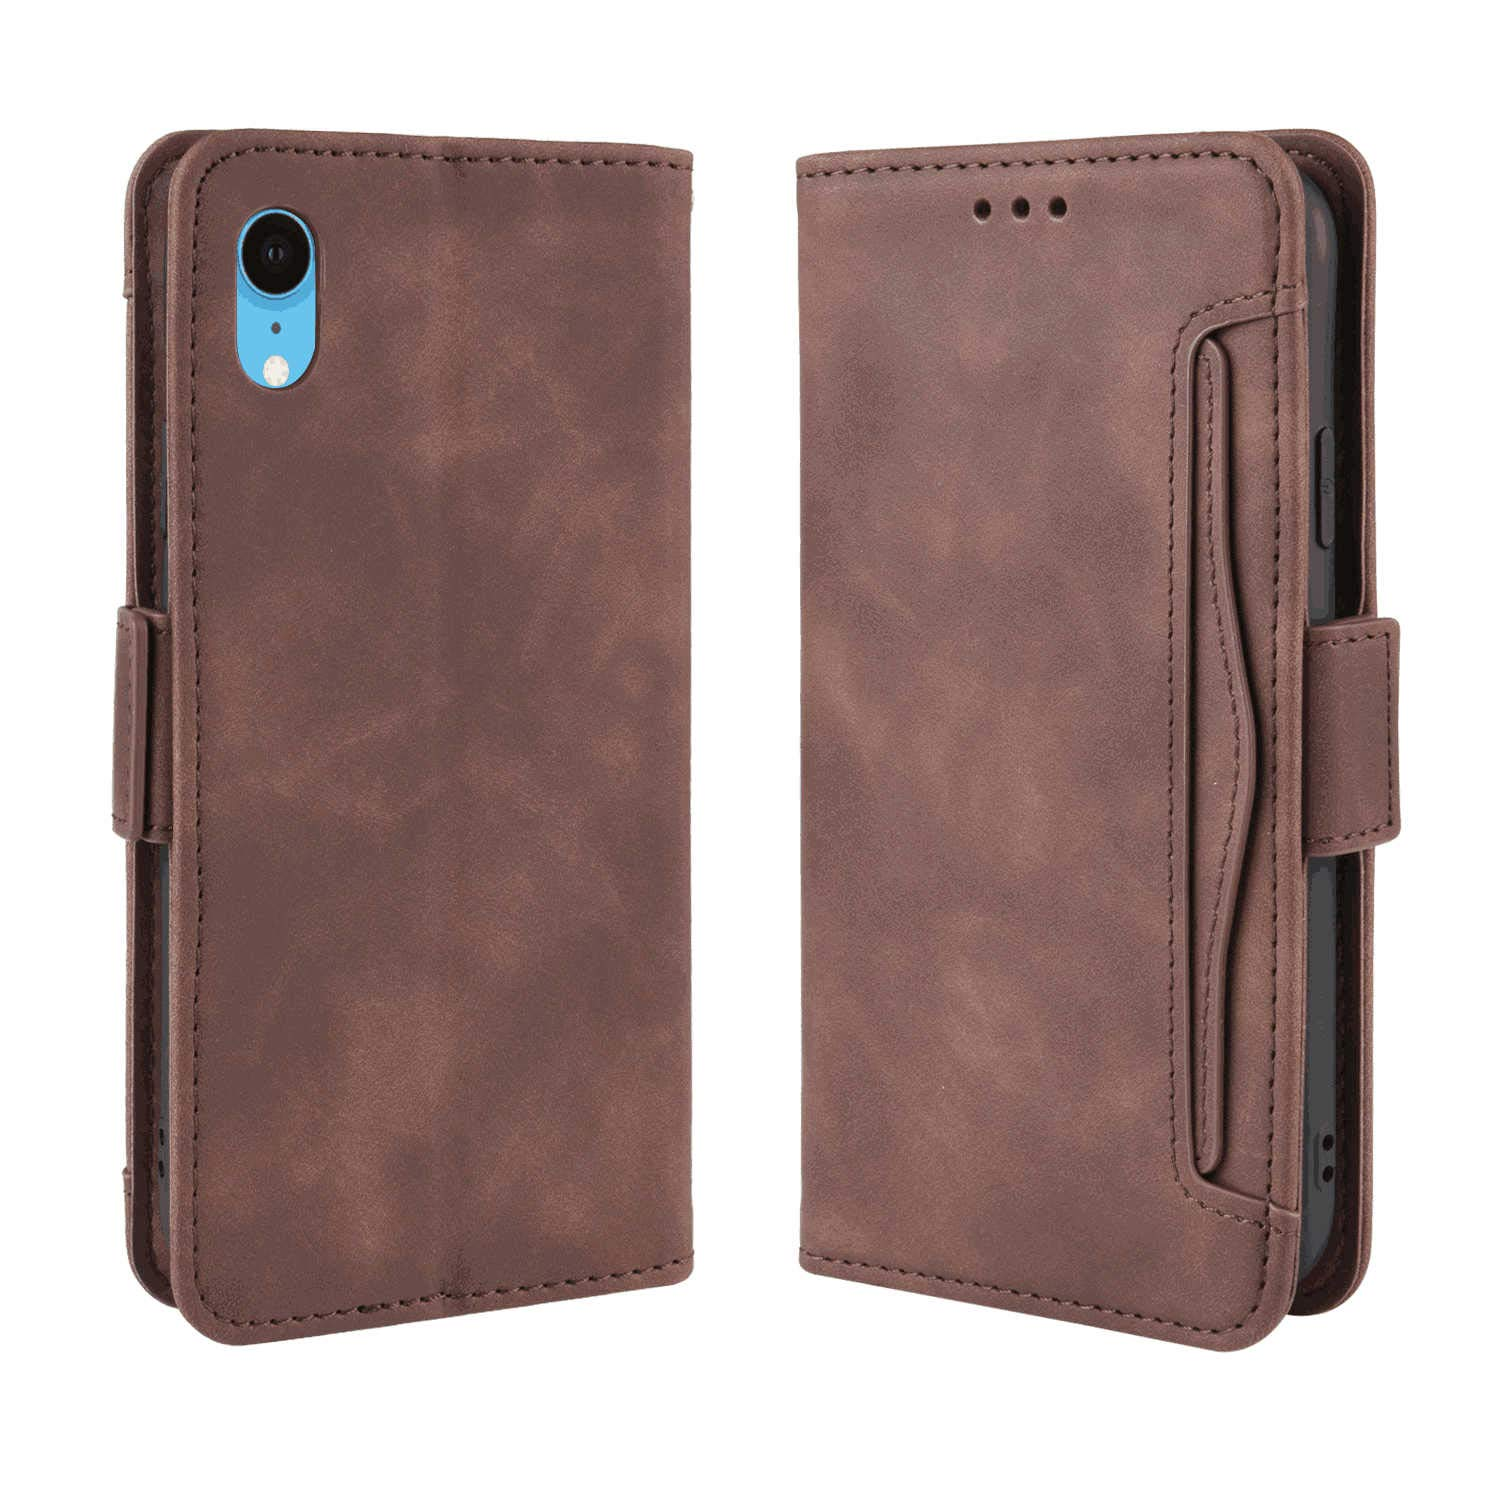 iPhone X Flip Case Cover for Leather Cell Phone Cover Extra-Durable Business Kickstand Card Holders Flip Cover